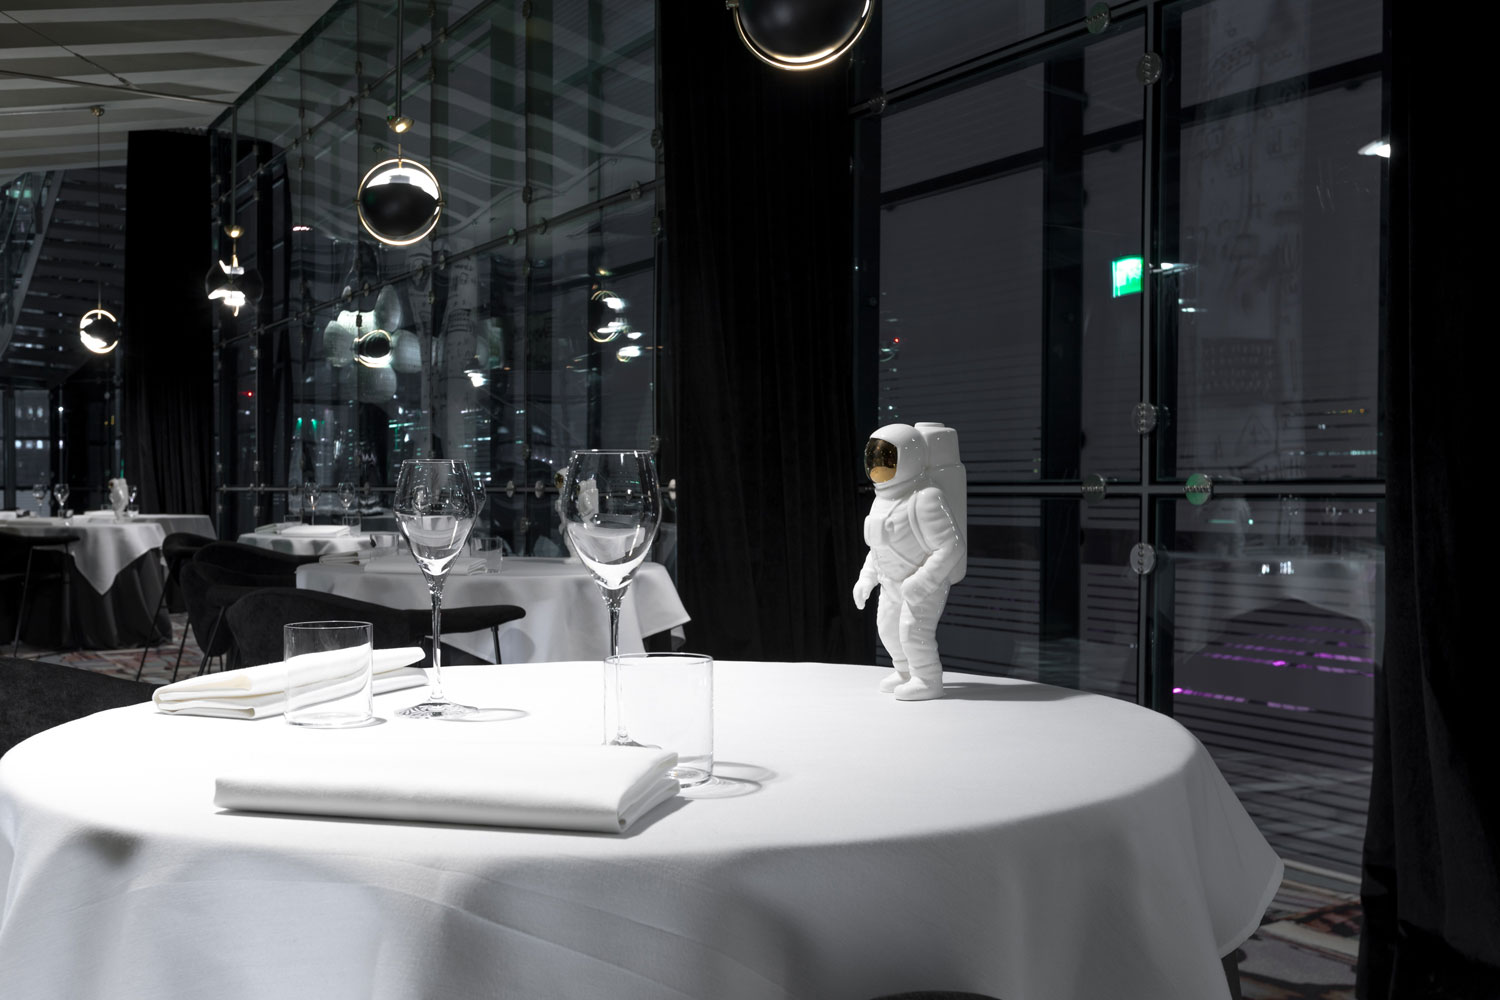 a white table with an astronaut figurine on top